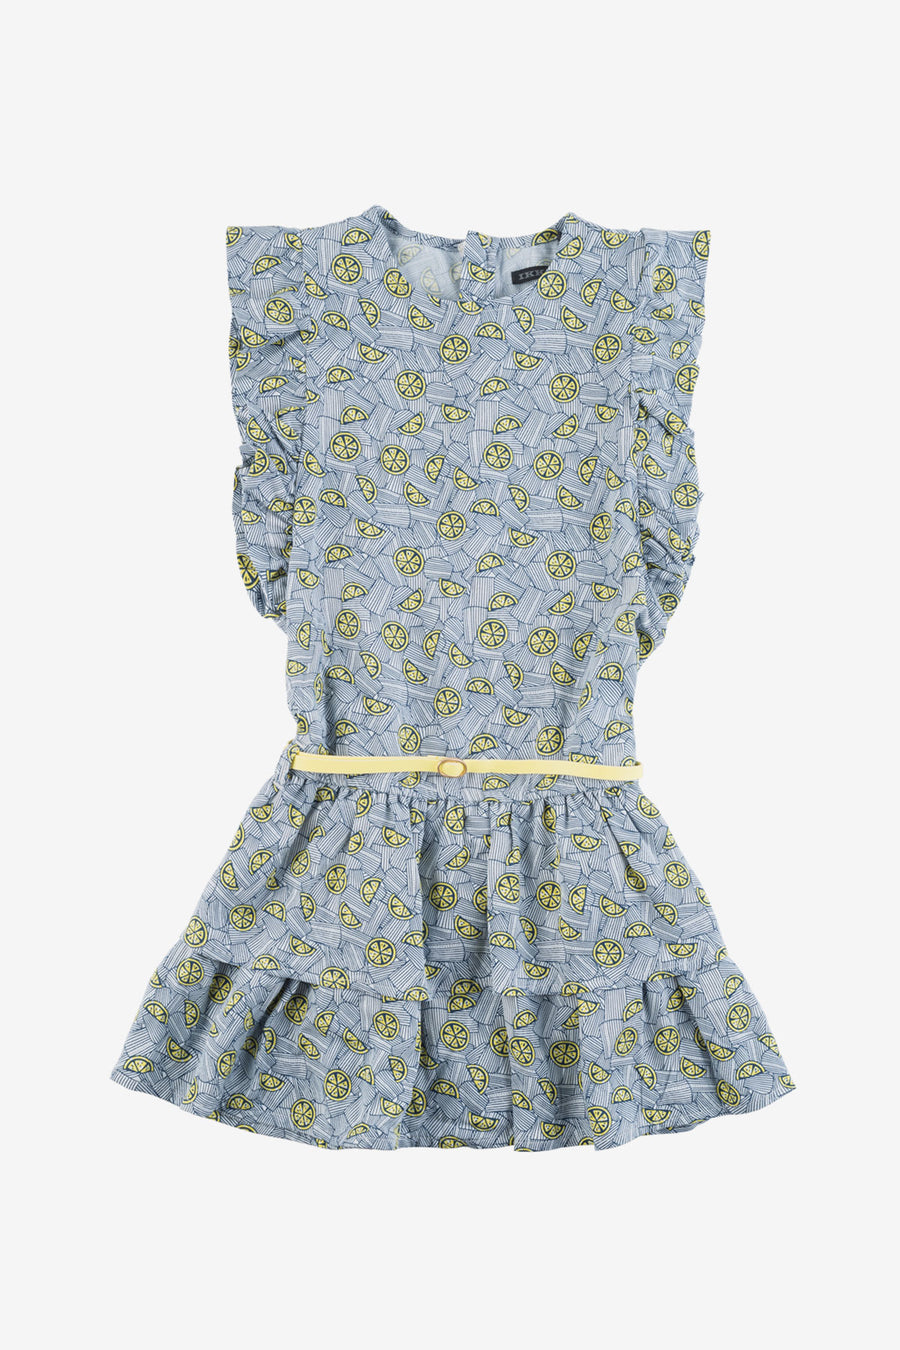 IKKS Lemon Slice Dress